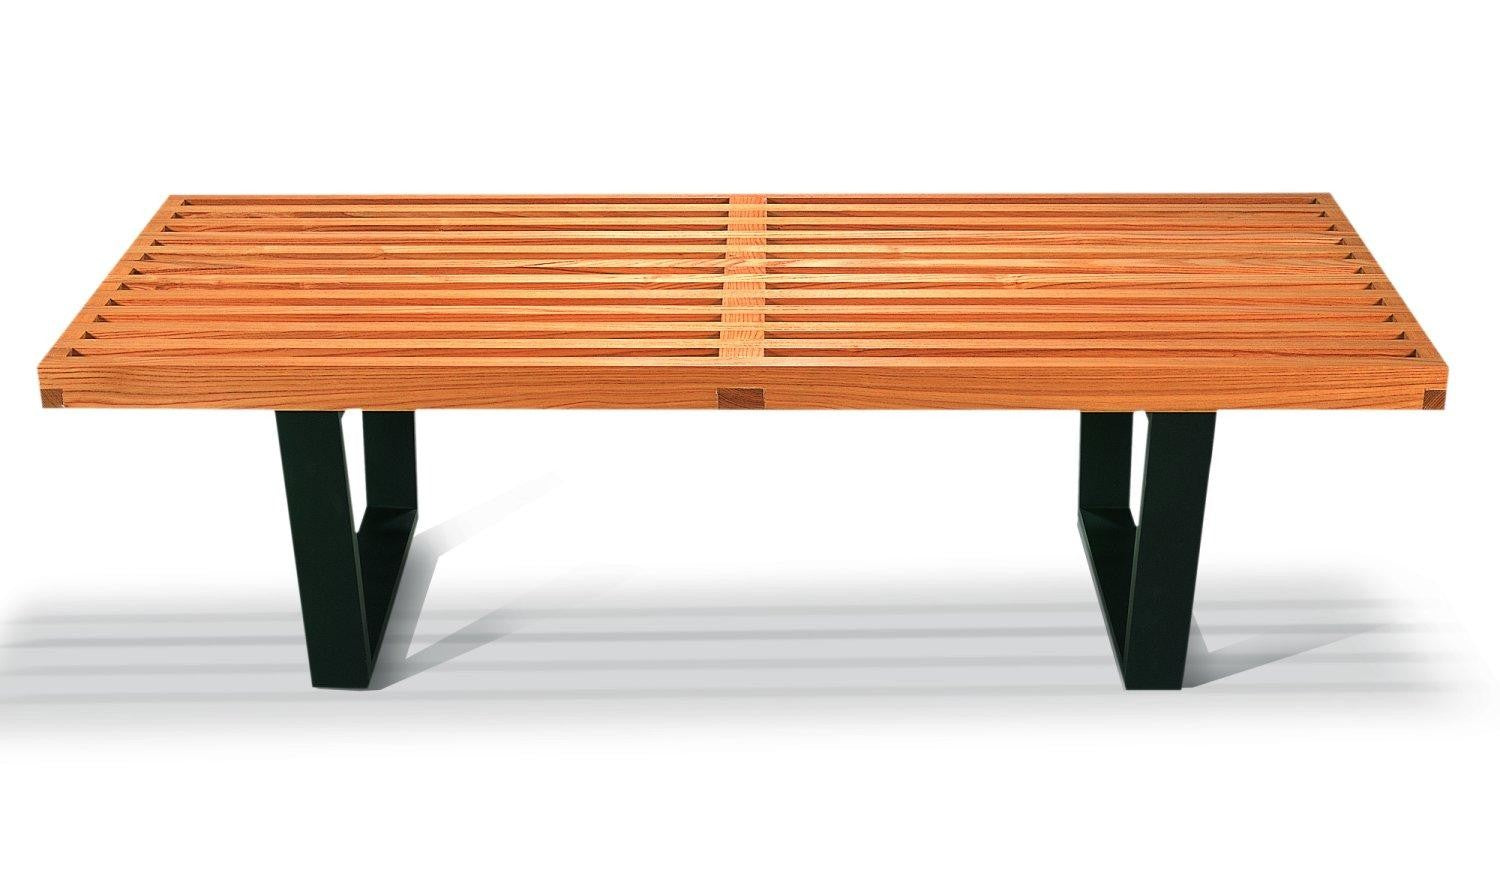 GN Short Bench 122cm - Timeless Design